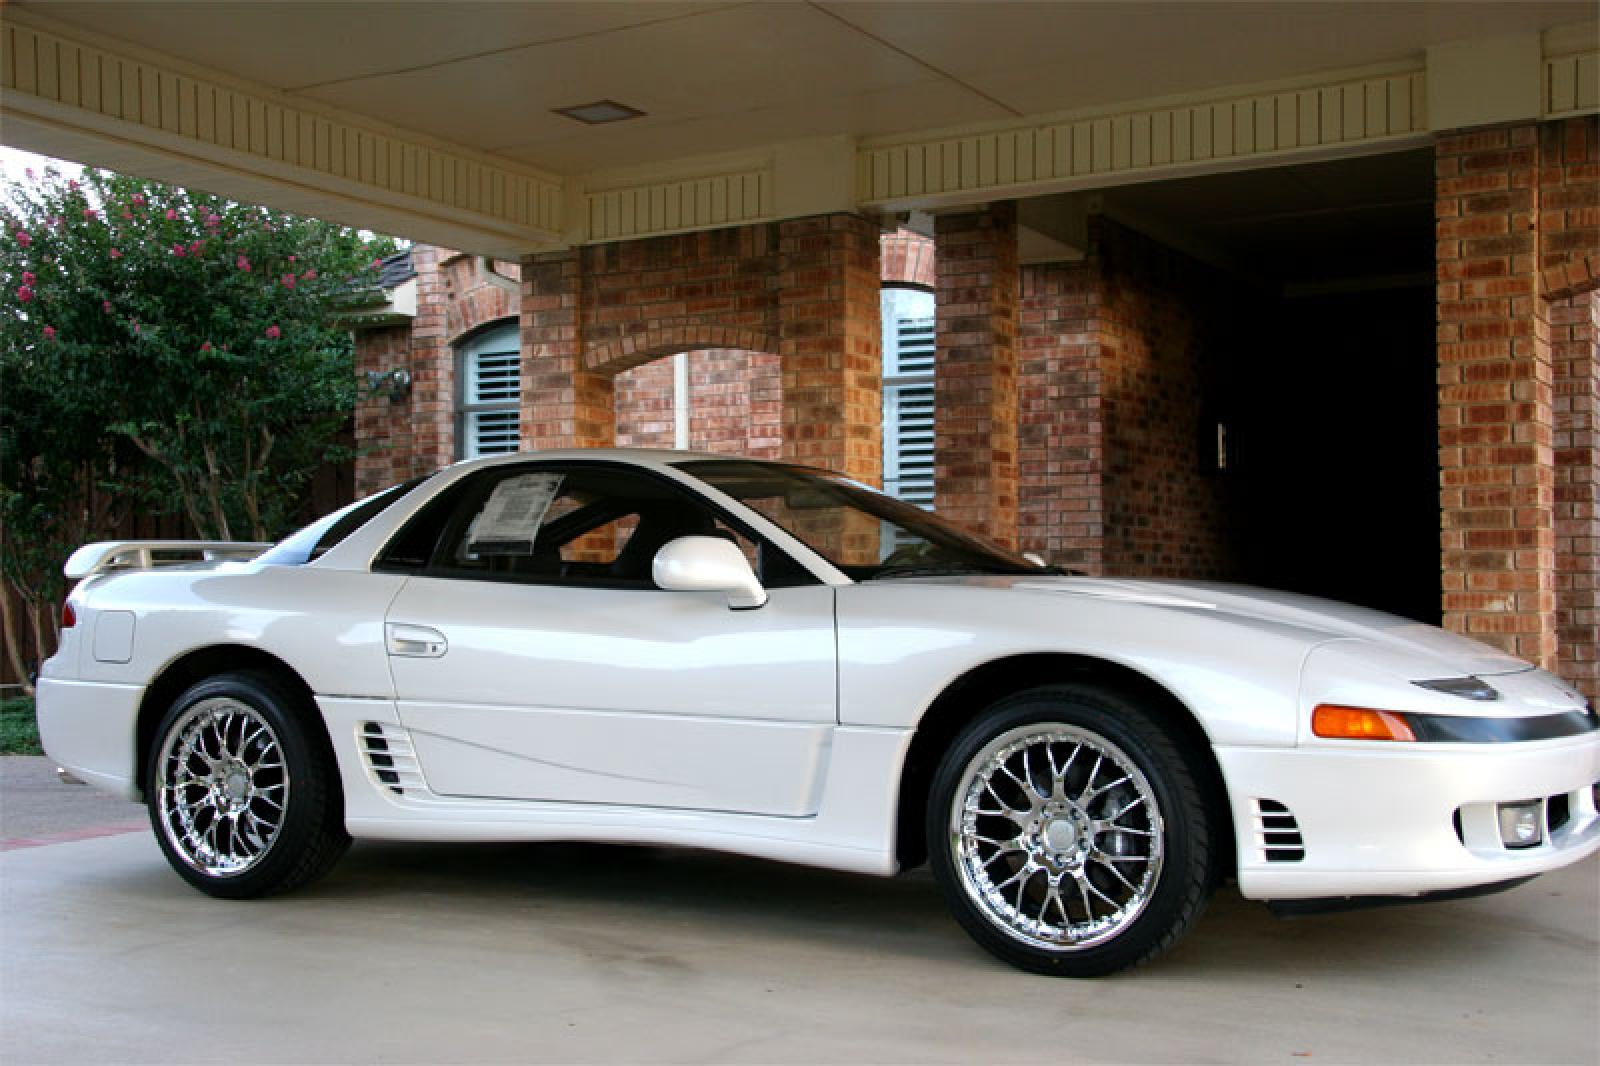 1992 Mitsubishi 3000gt Information And Photos Zomb Drive